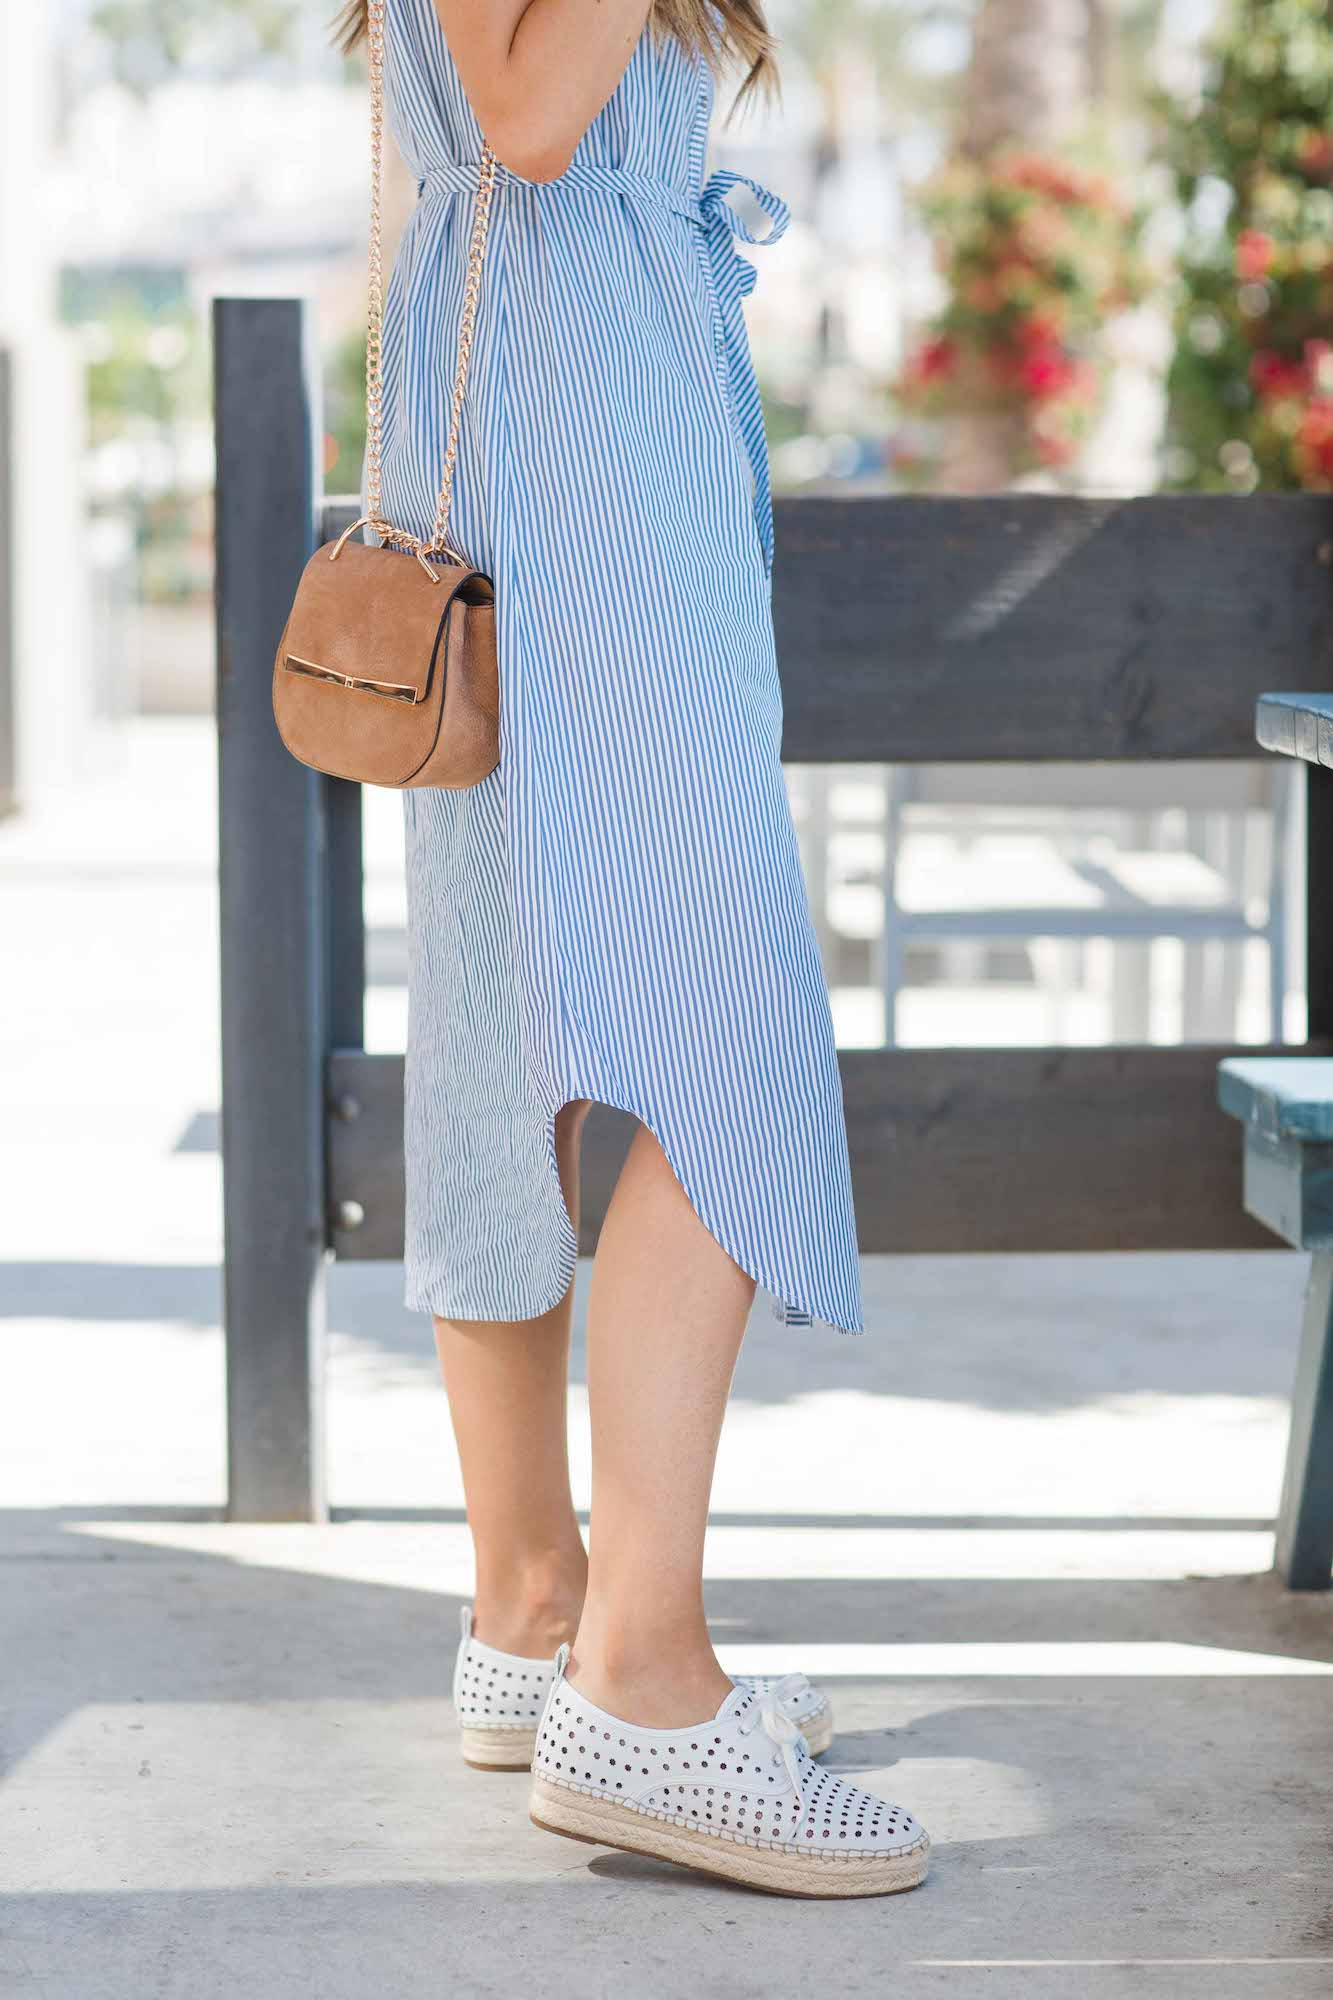 Merrick's Art Shirt Dress and Sneakers